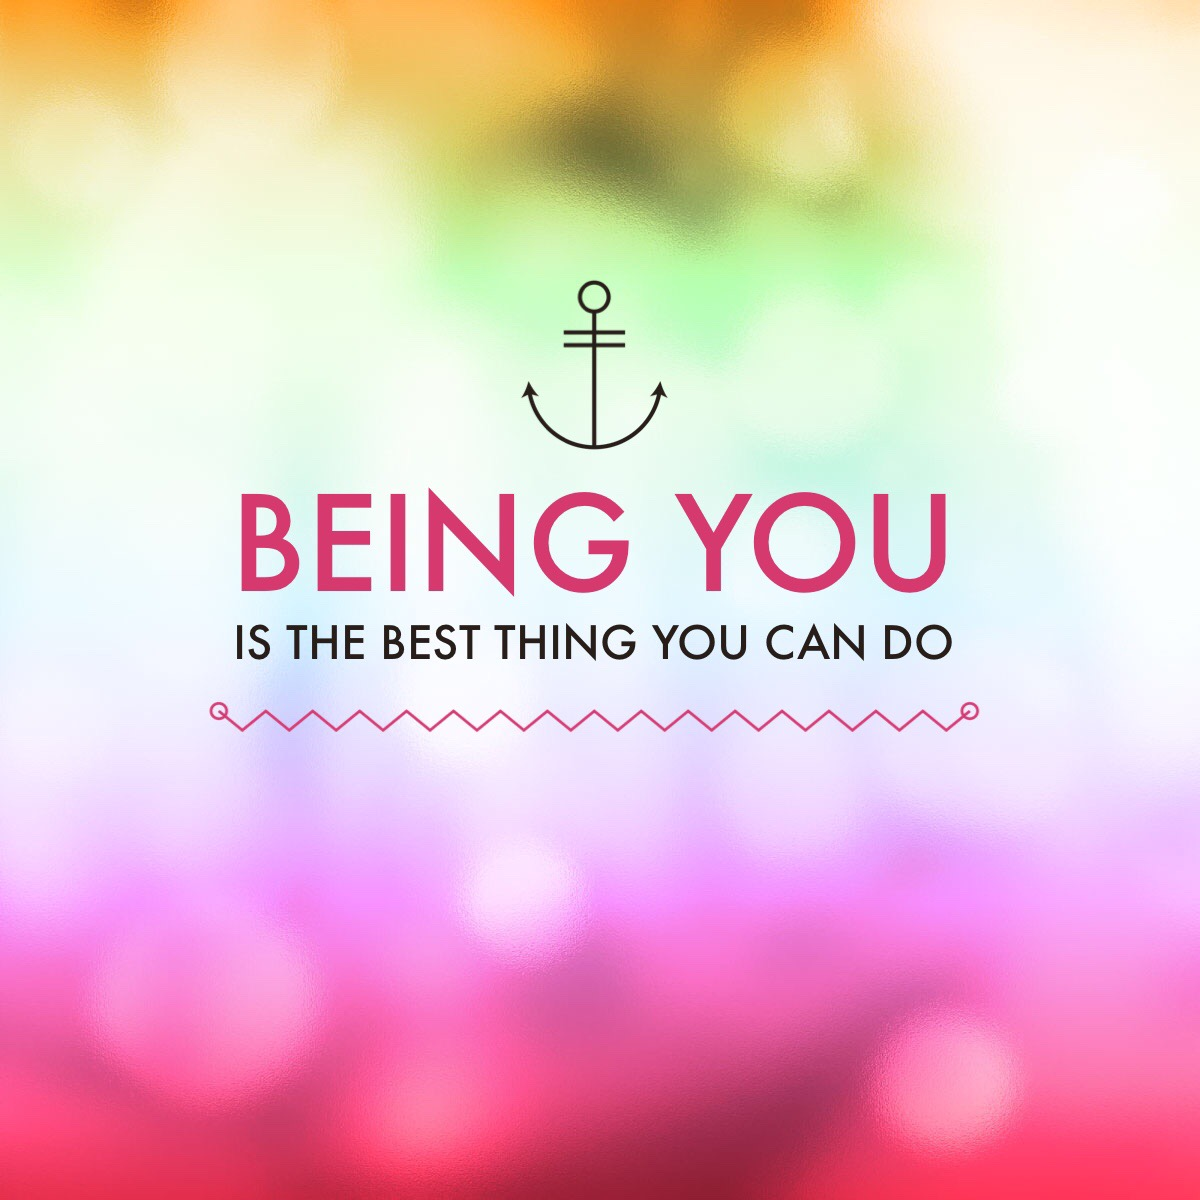 Being you is the BEST thing you can do